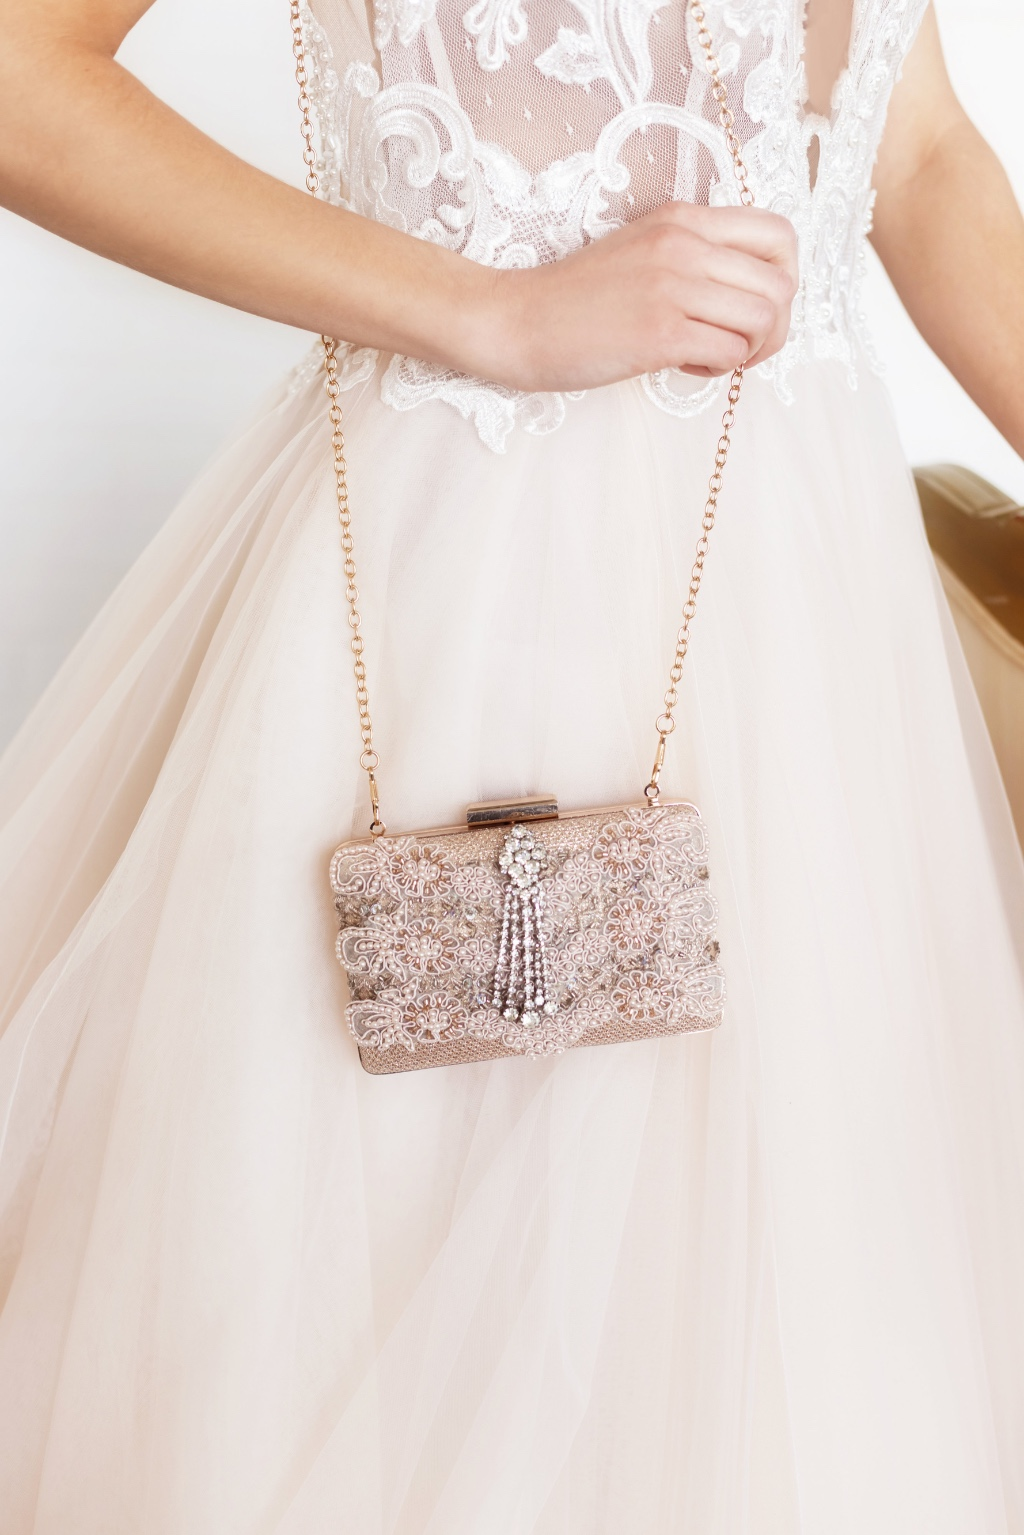 Blush is the perfect Summer wedding touch of color